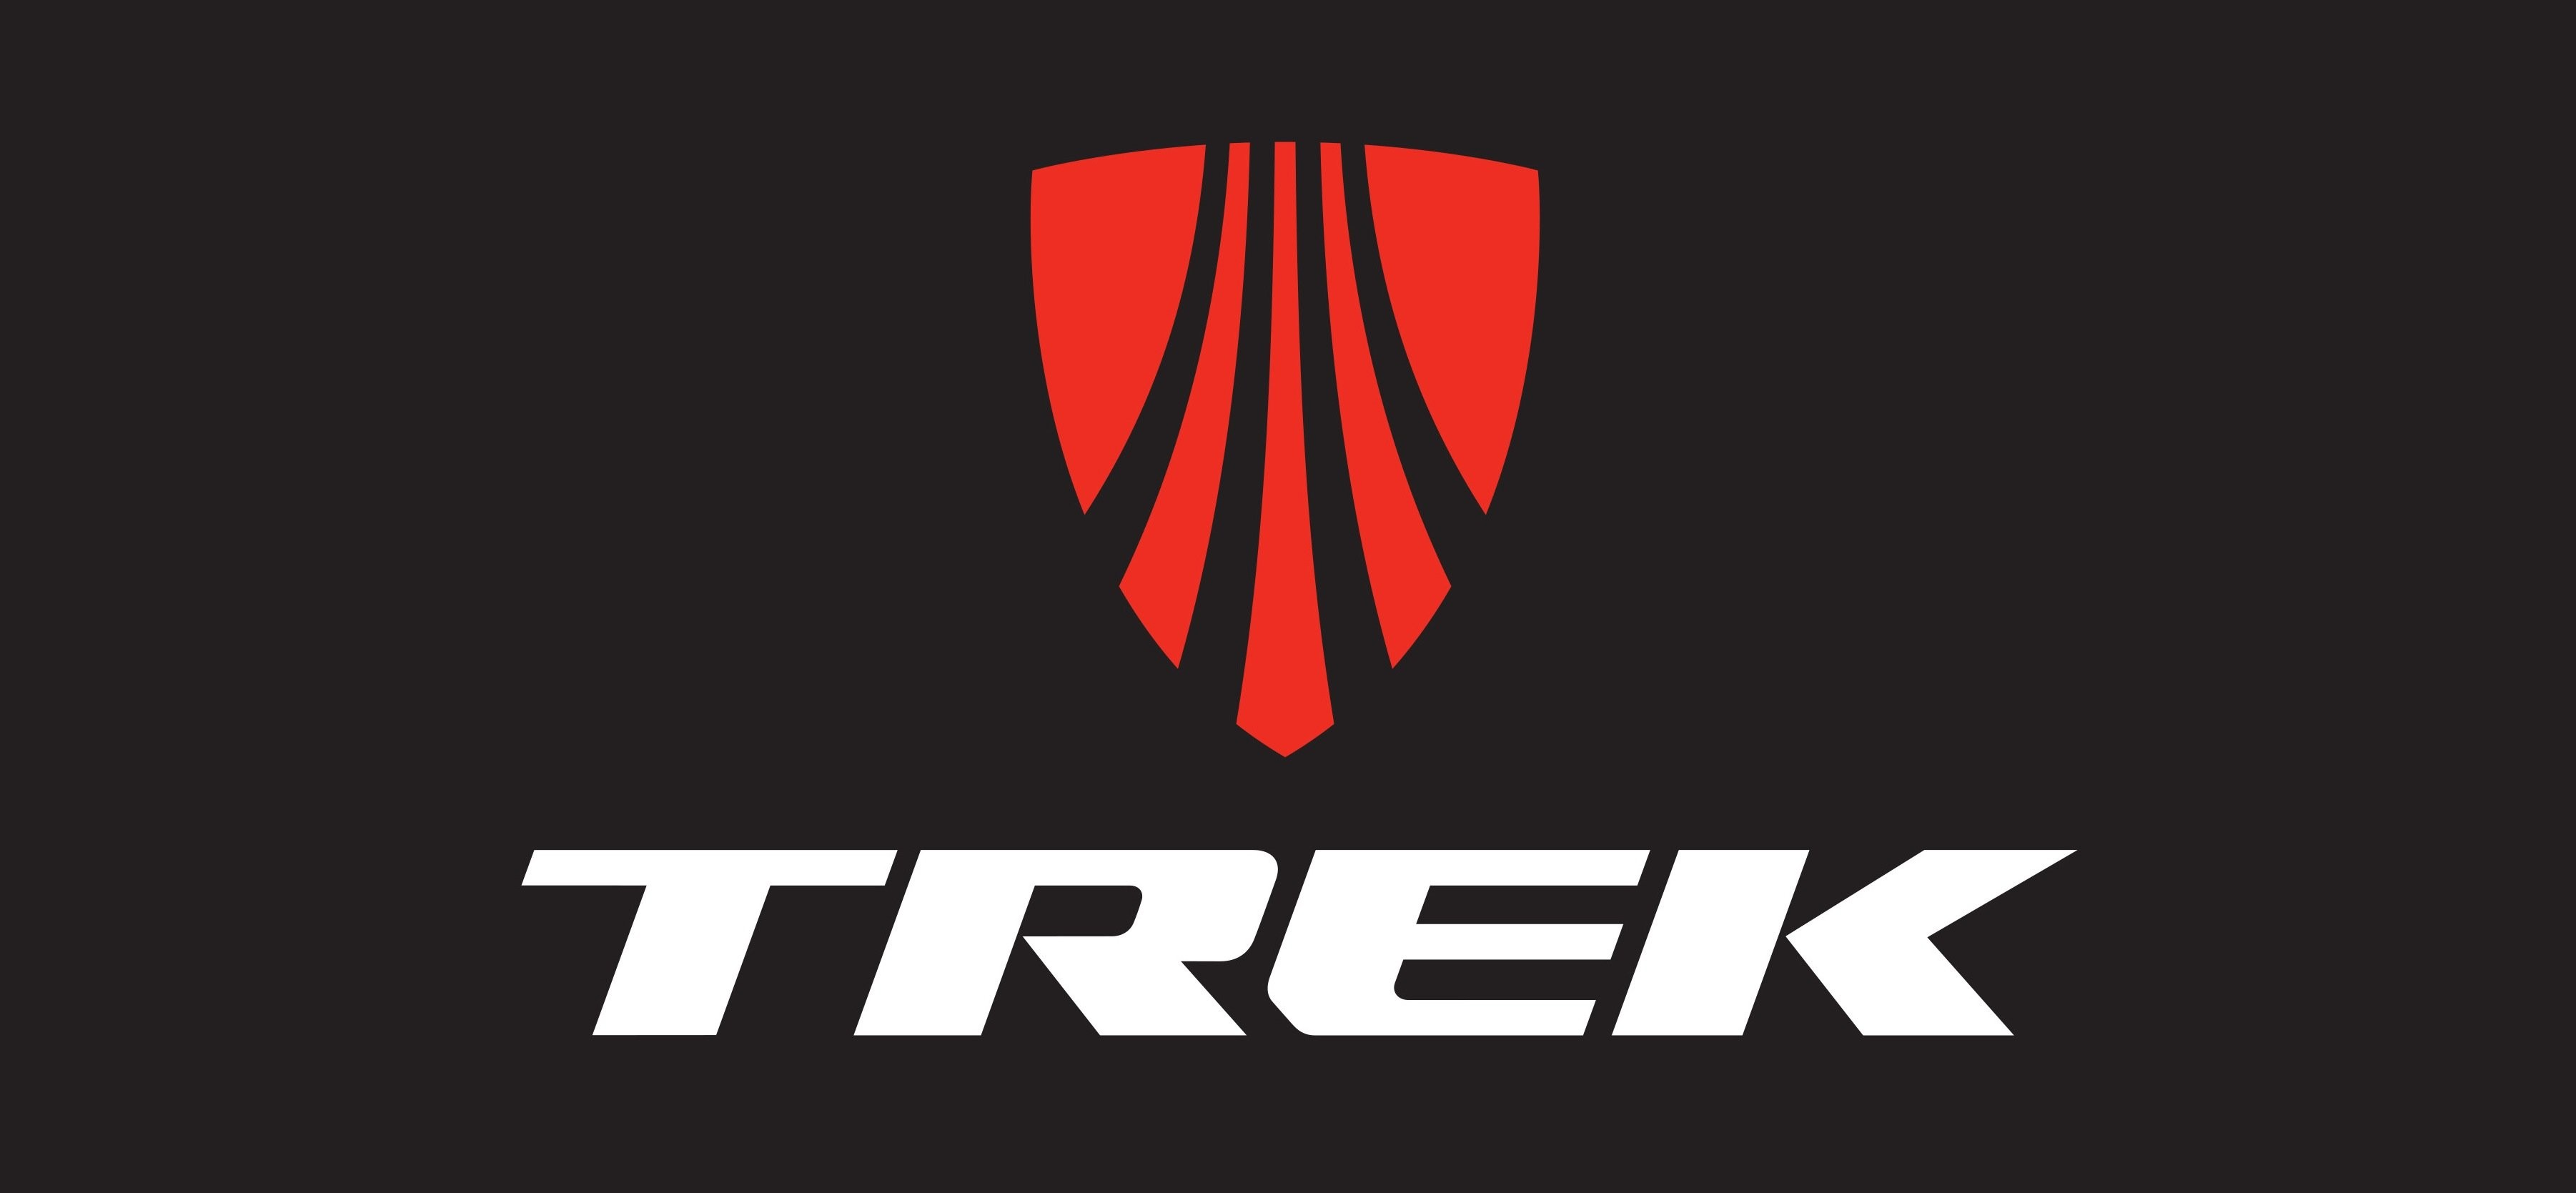 Trek Bicycle Picture by Adrian Ashment on WALLPORT